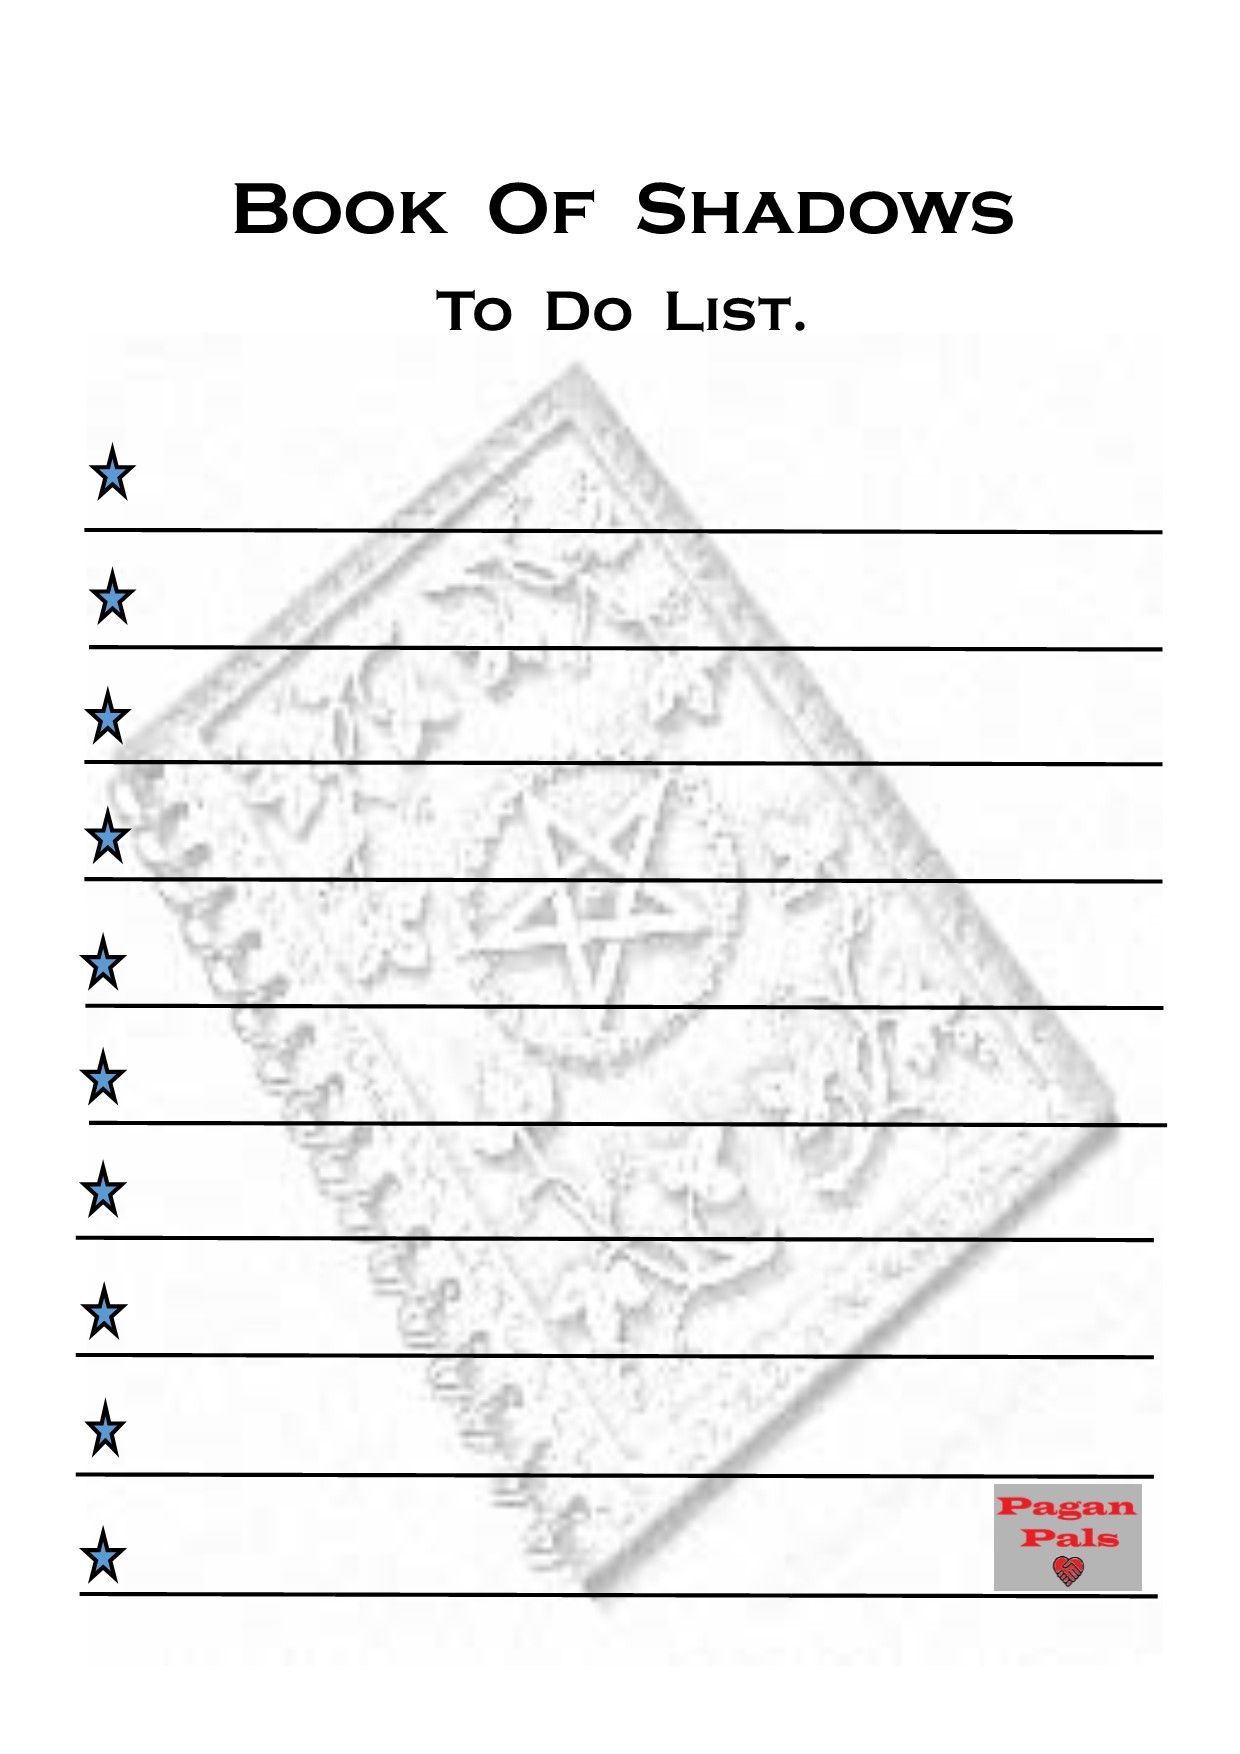 To Do List Printer Friendly Book Of Shadows Page